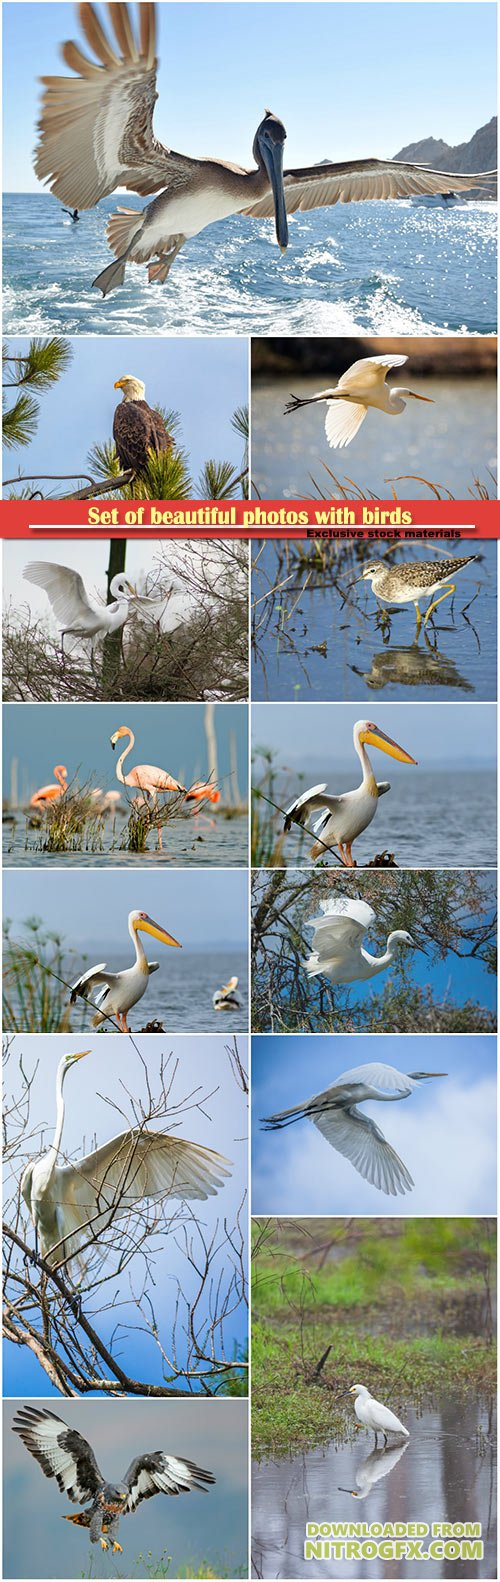 Set of beautiful photos with birds